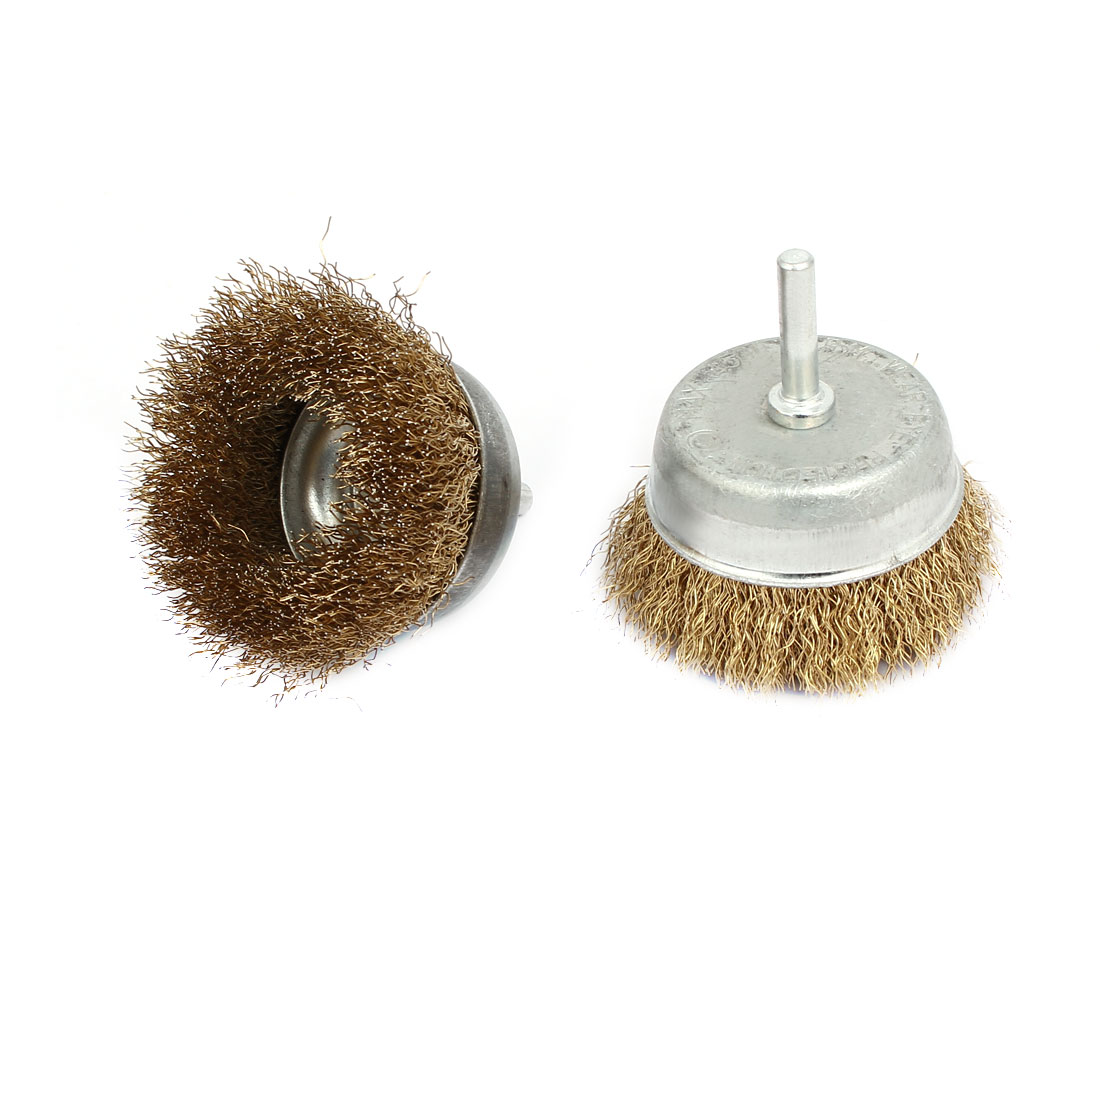 2pcs 6mm Shank 50mm Cup Stainless Steel Wire Polishing Brush for Rotary Tool